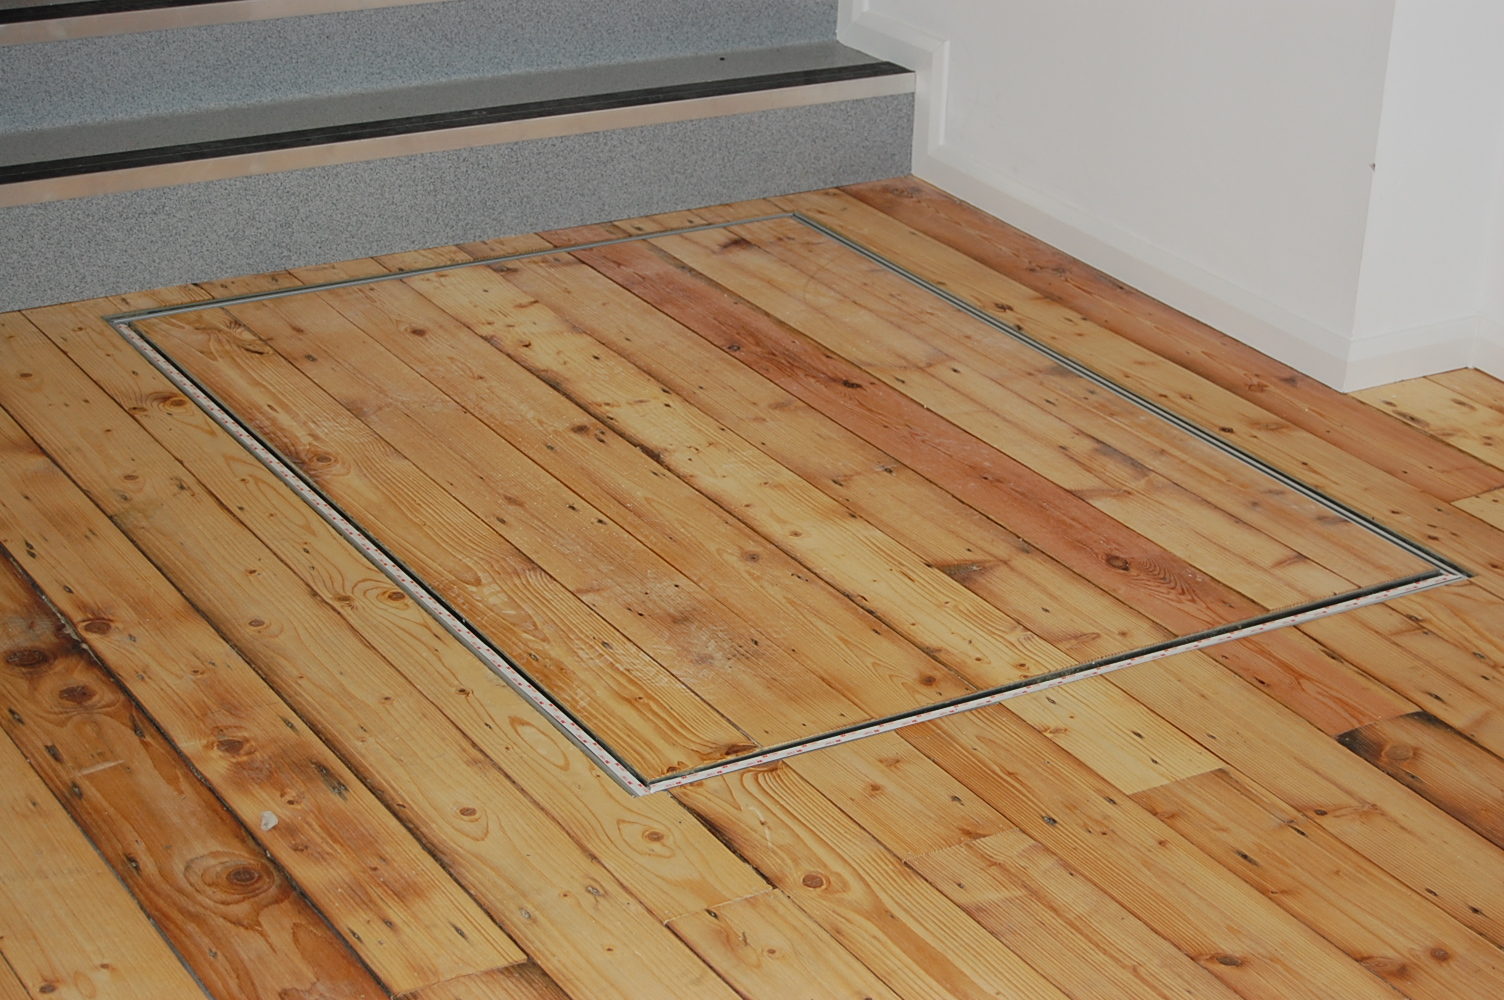 Step Lift at the Baltic Centre with Matching Hardwood Flooring